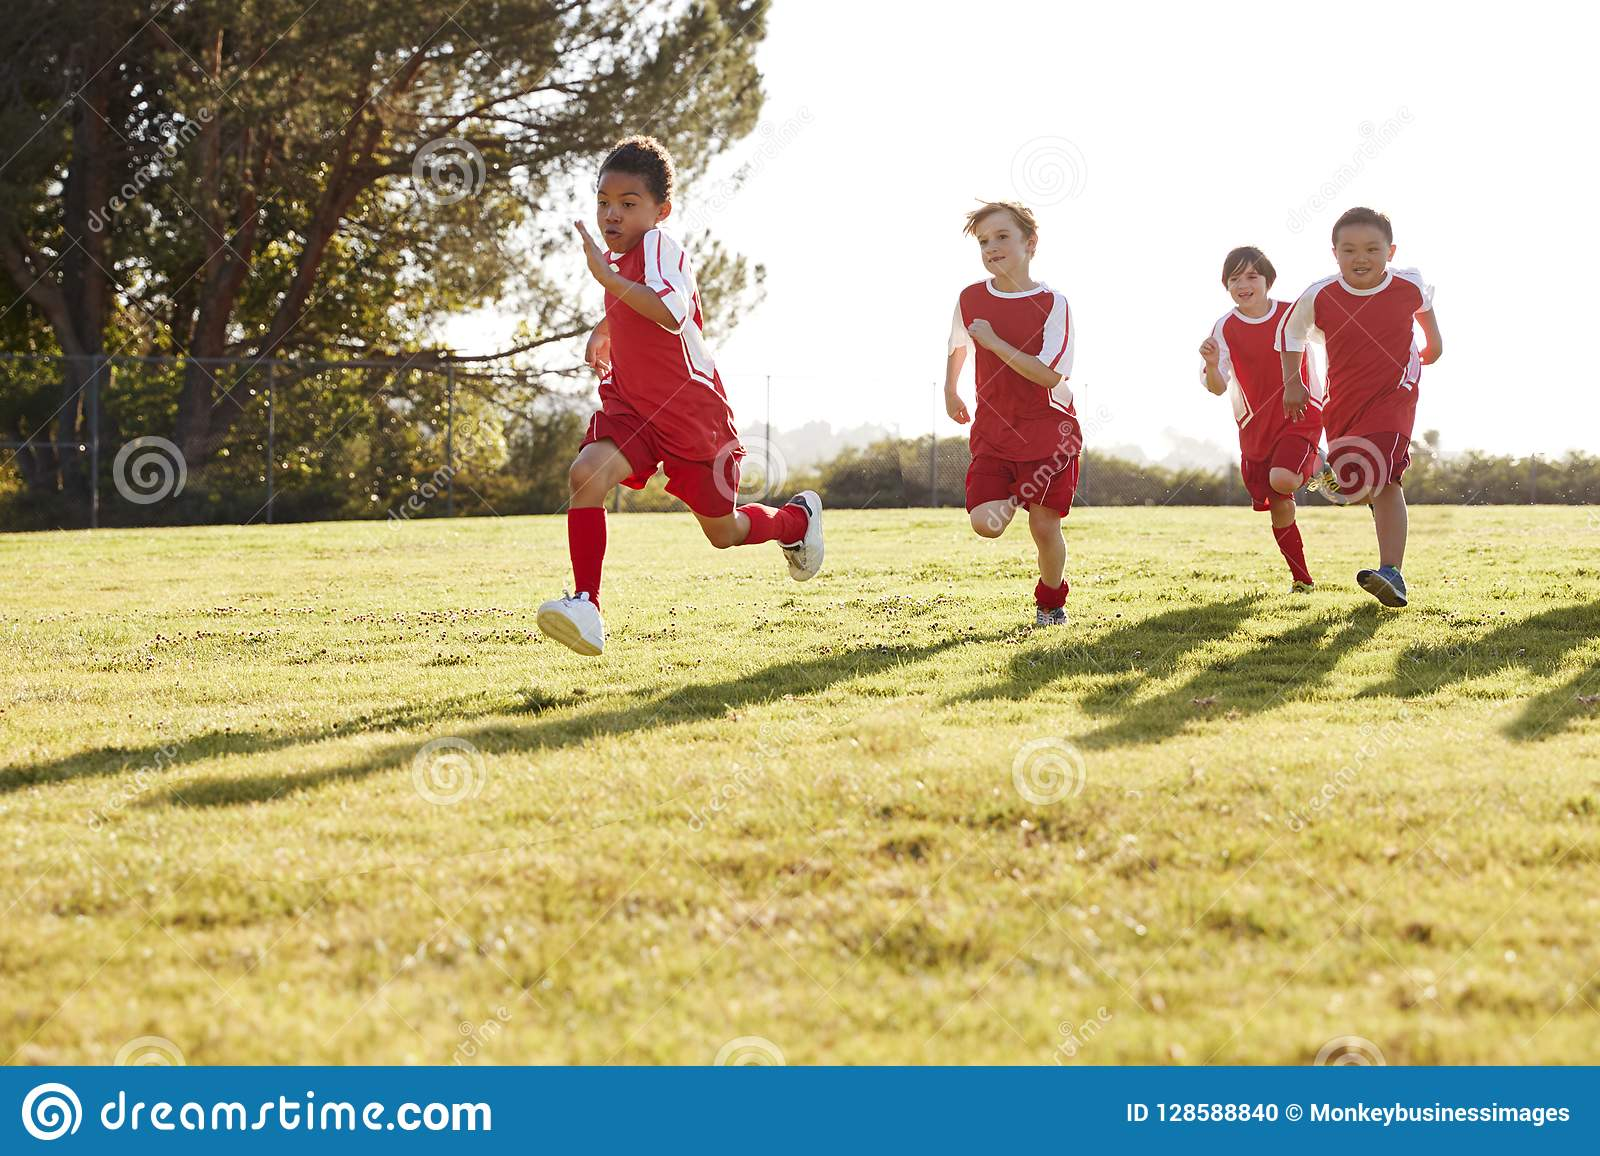 Four young boys in football strip running in a playing field